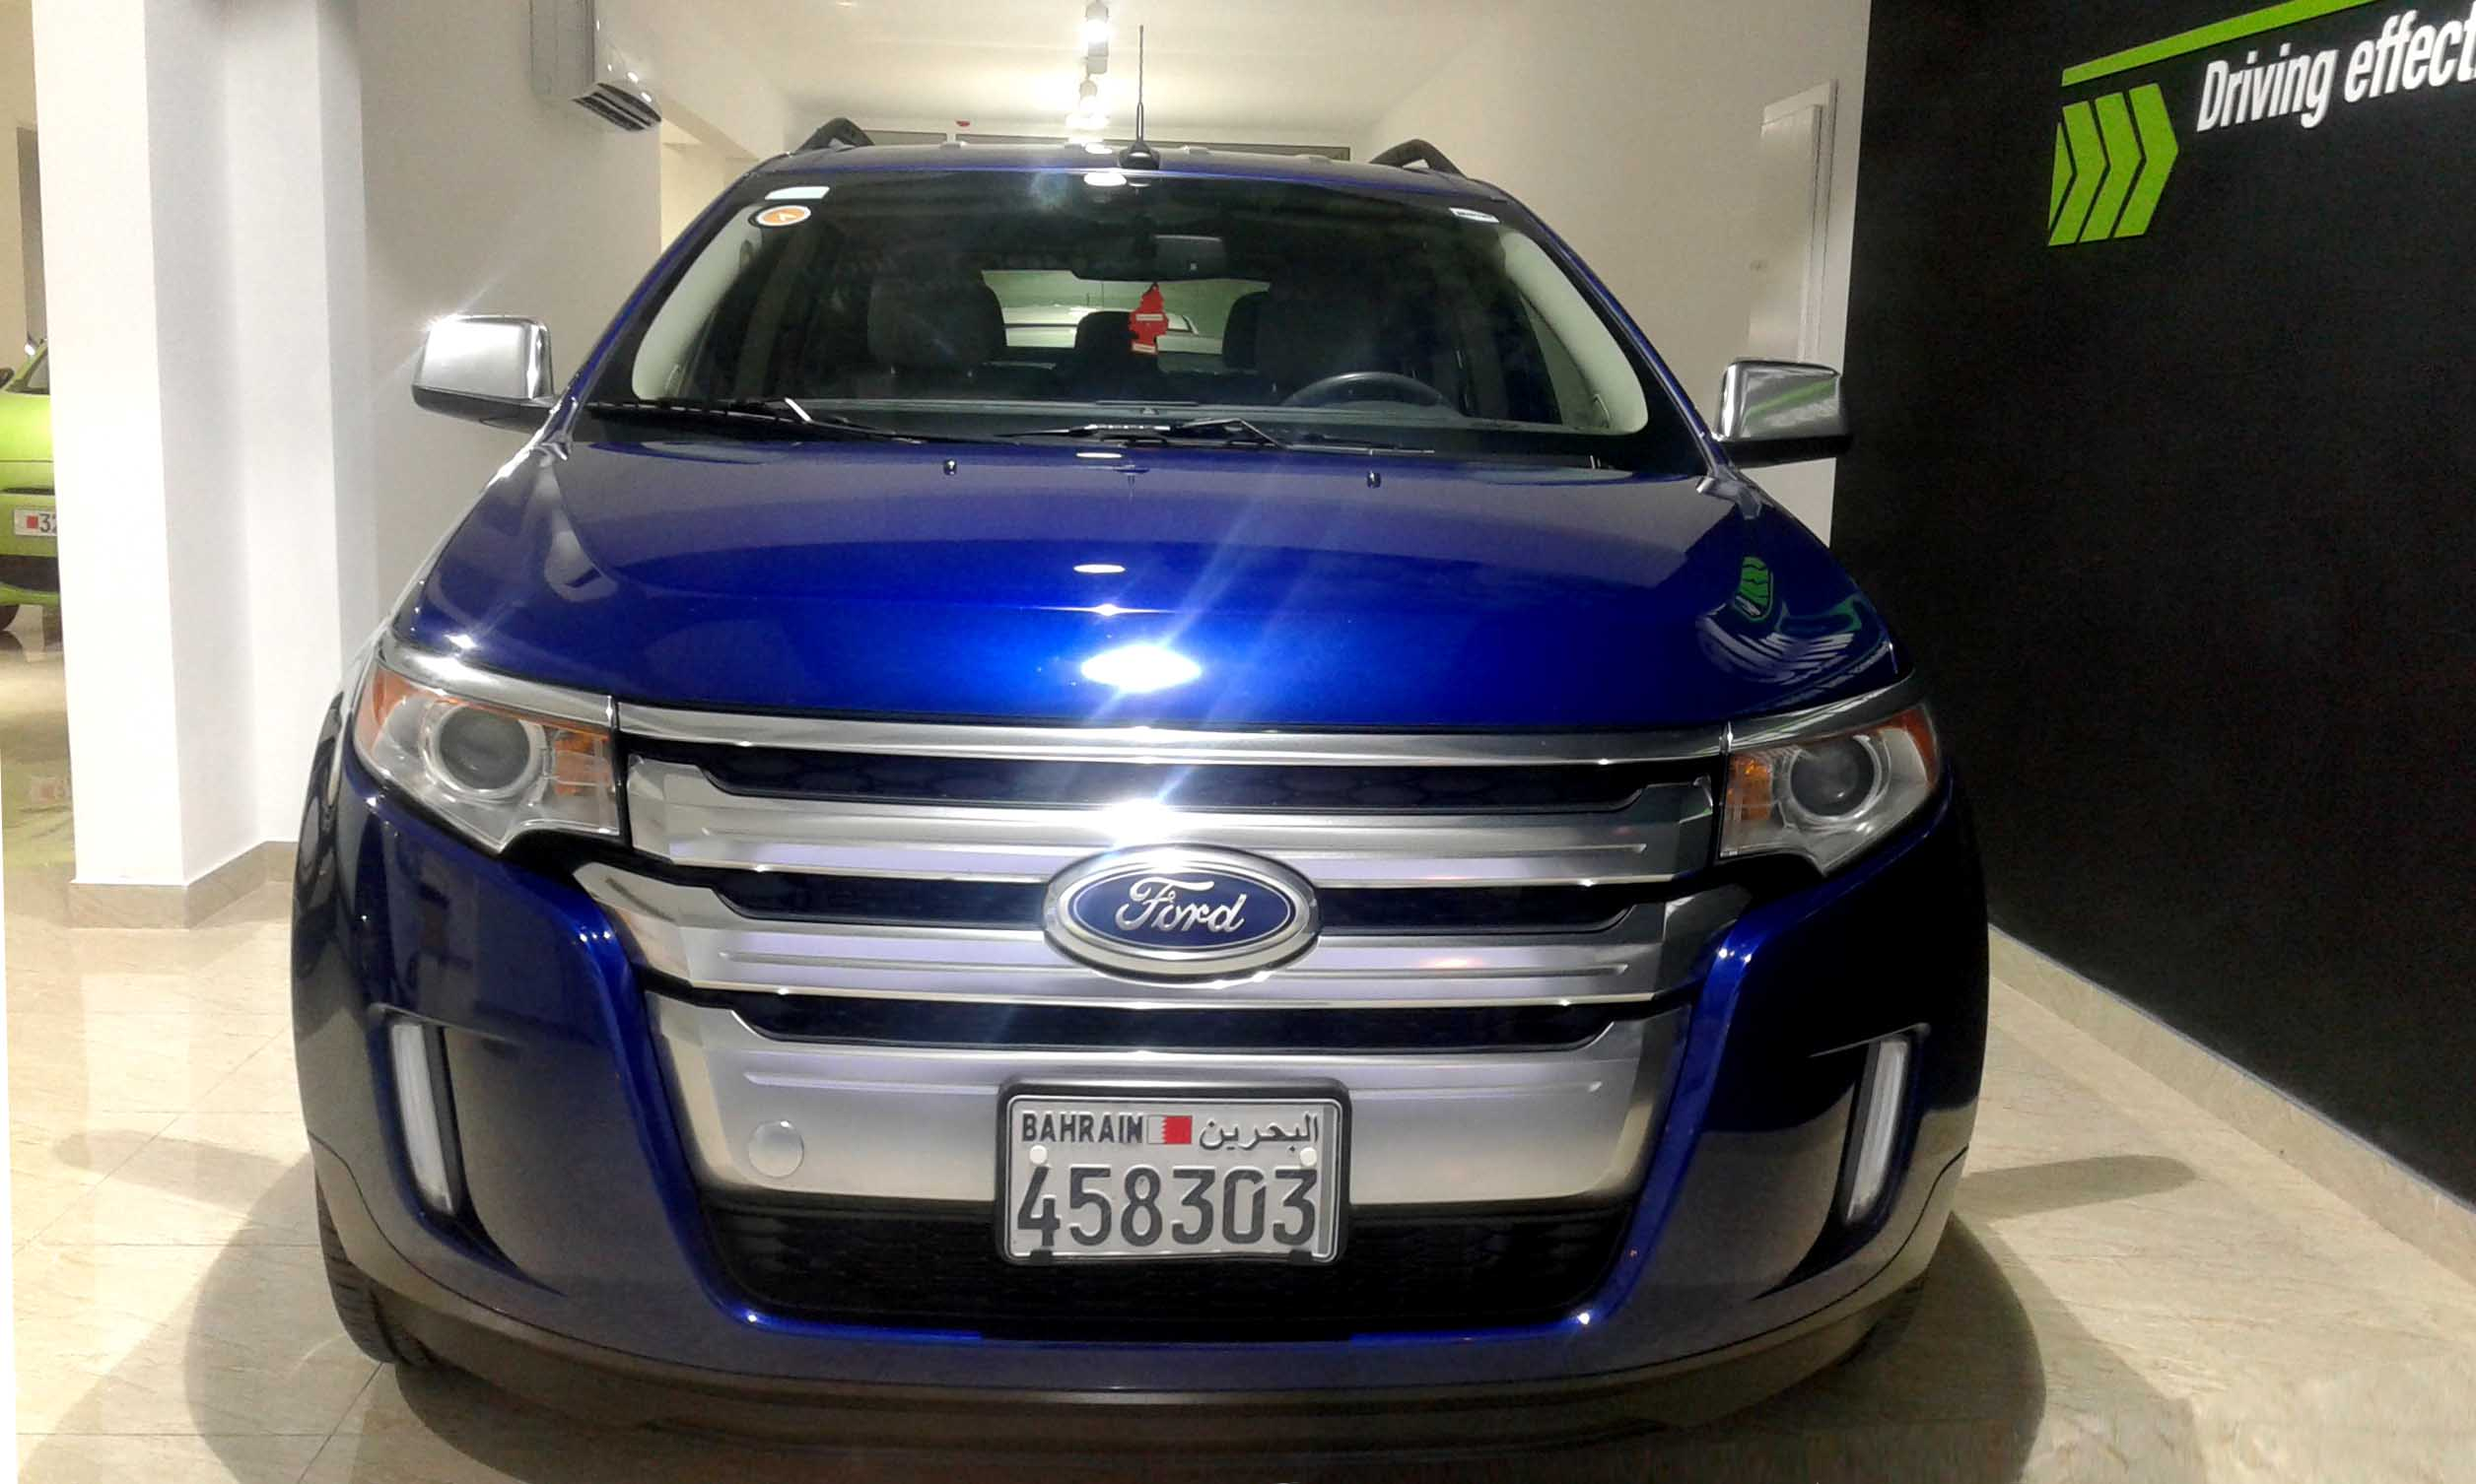 used ford edge 2013 car for sale in manama 700246. Black Bedroom Furniture Sets. Home Design Ideas